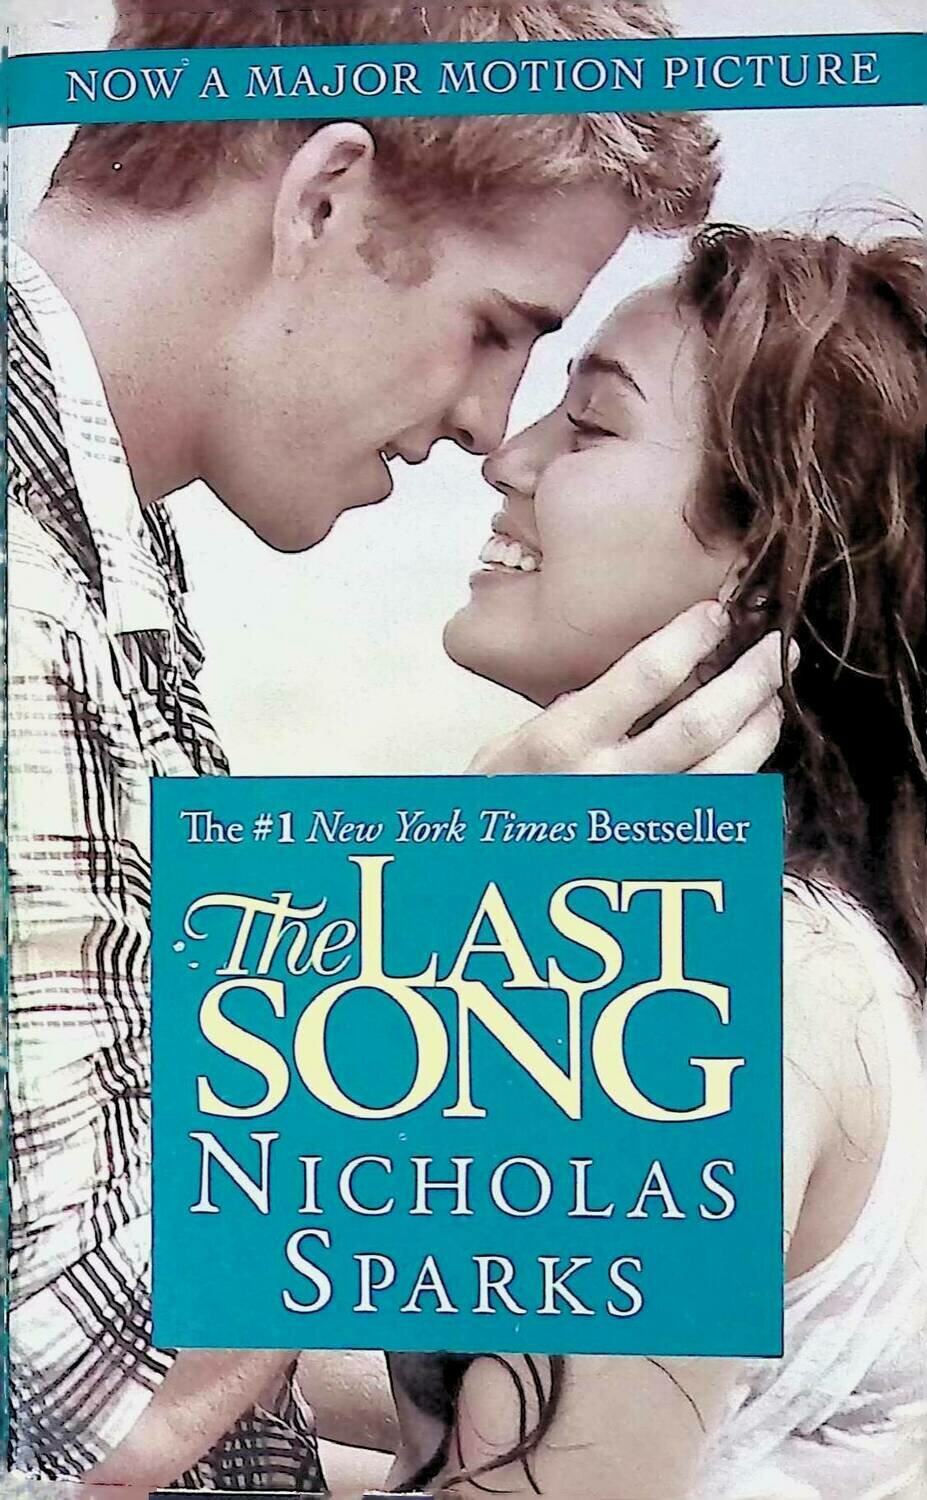 The Last Song; Nicholas Sparks